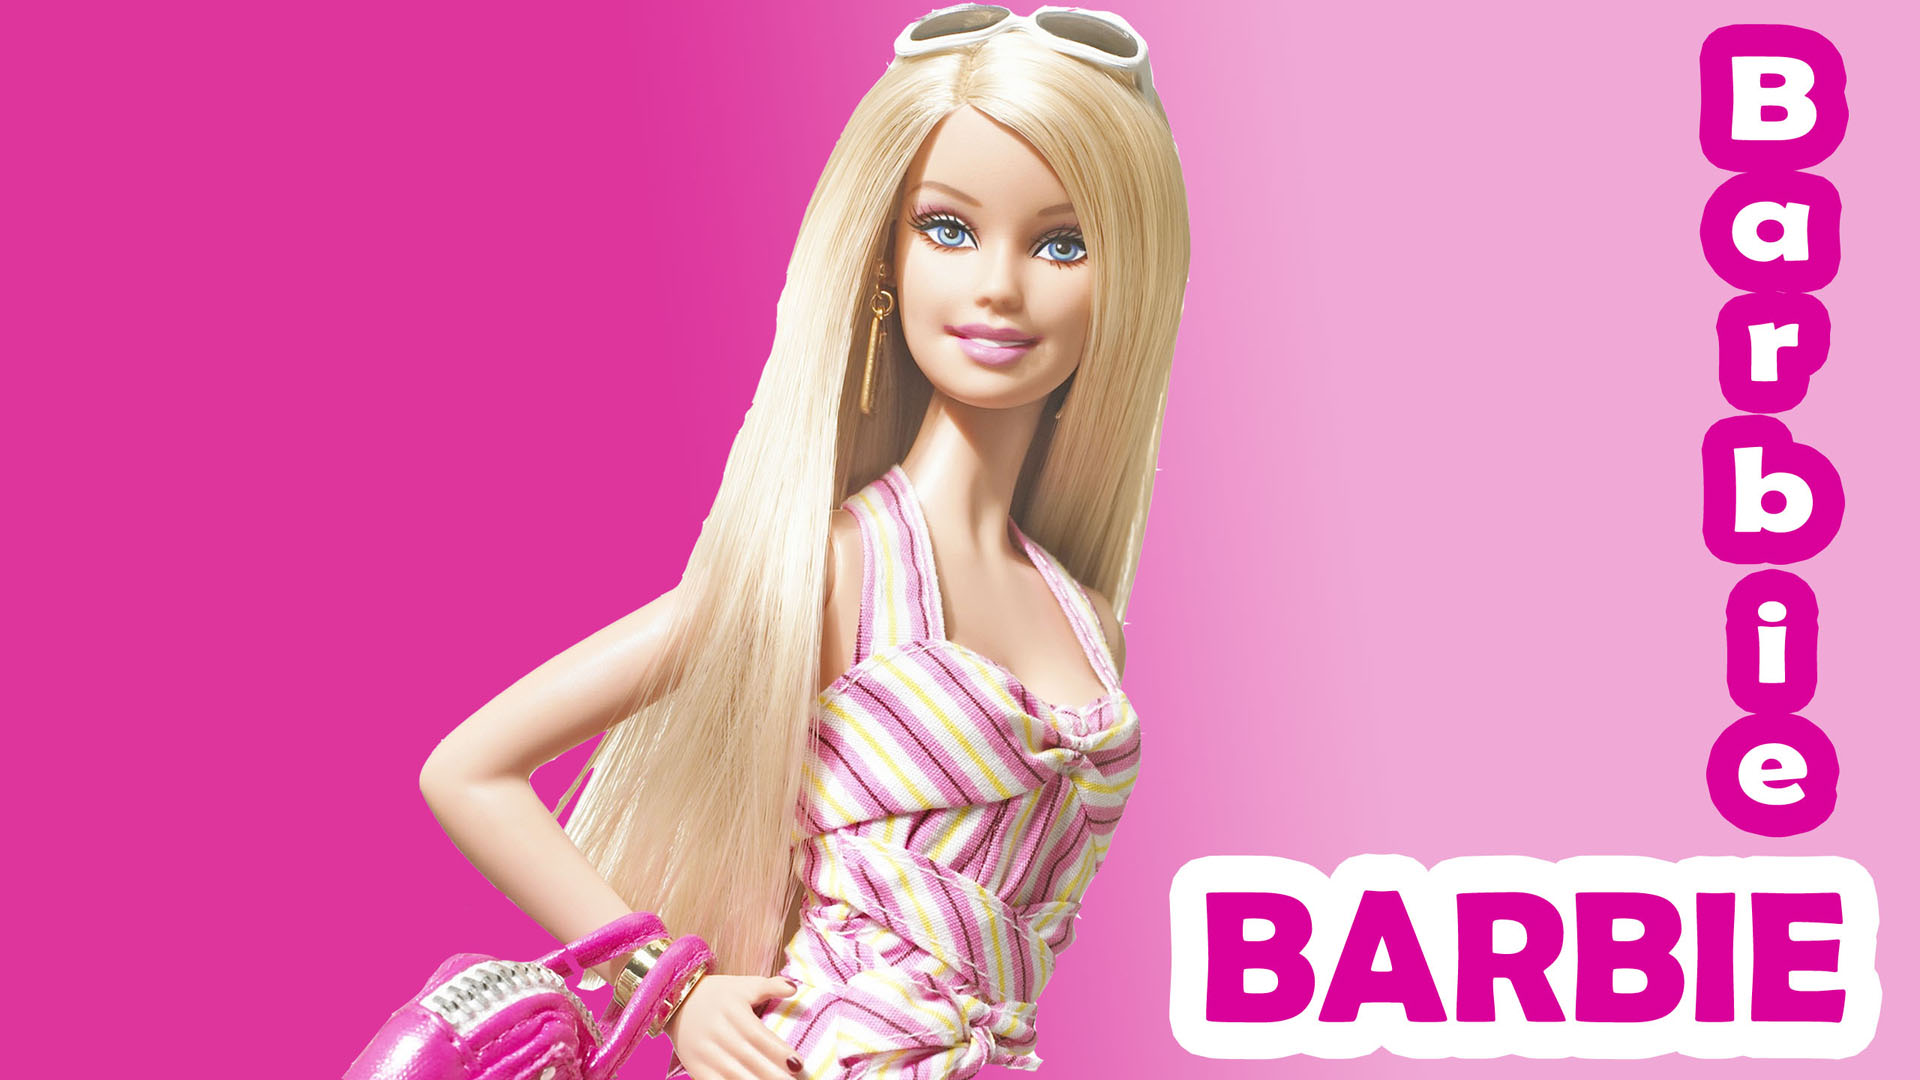 images about ▫Barbie▫ on Pinterest 1920x1080